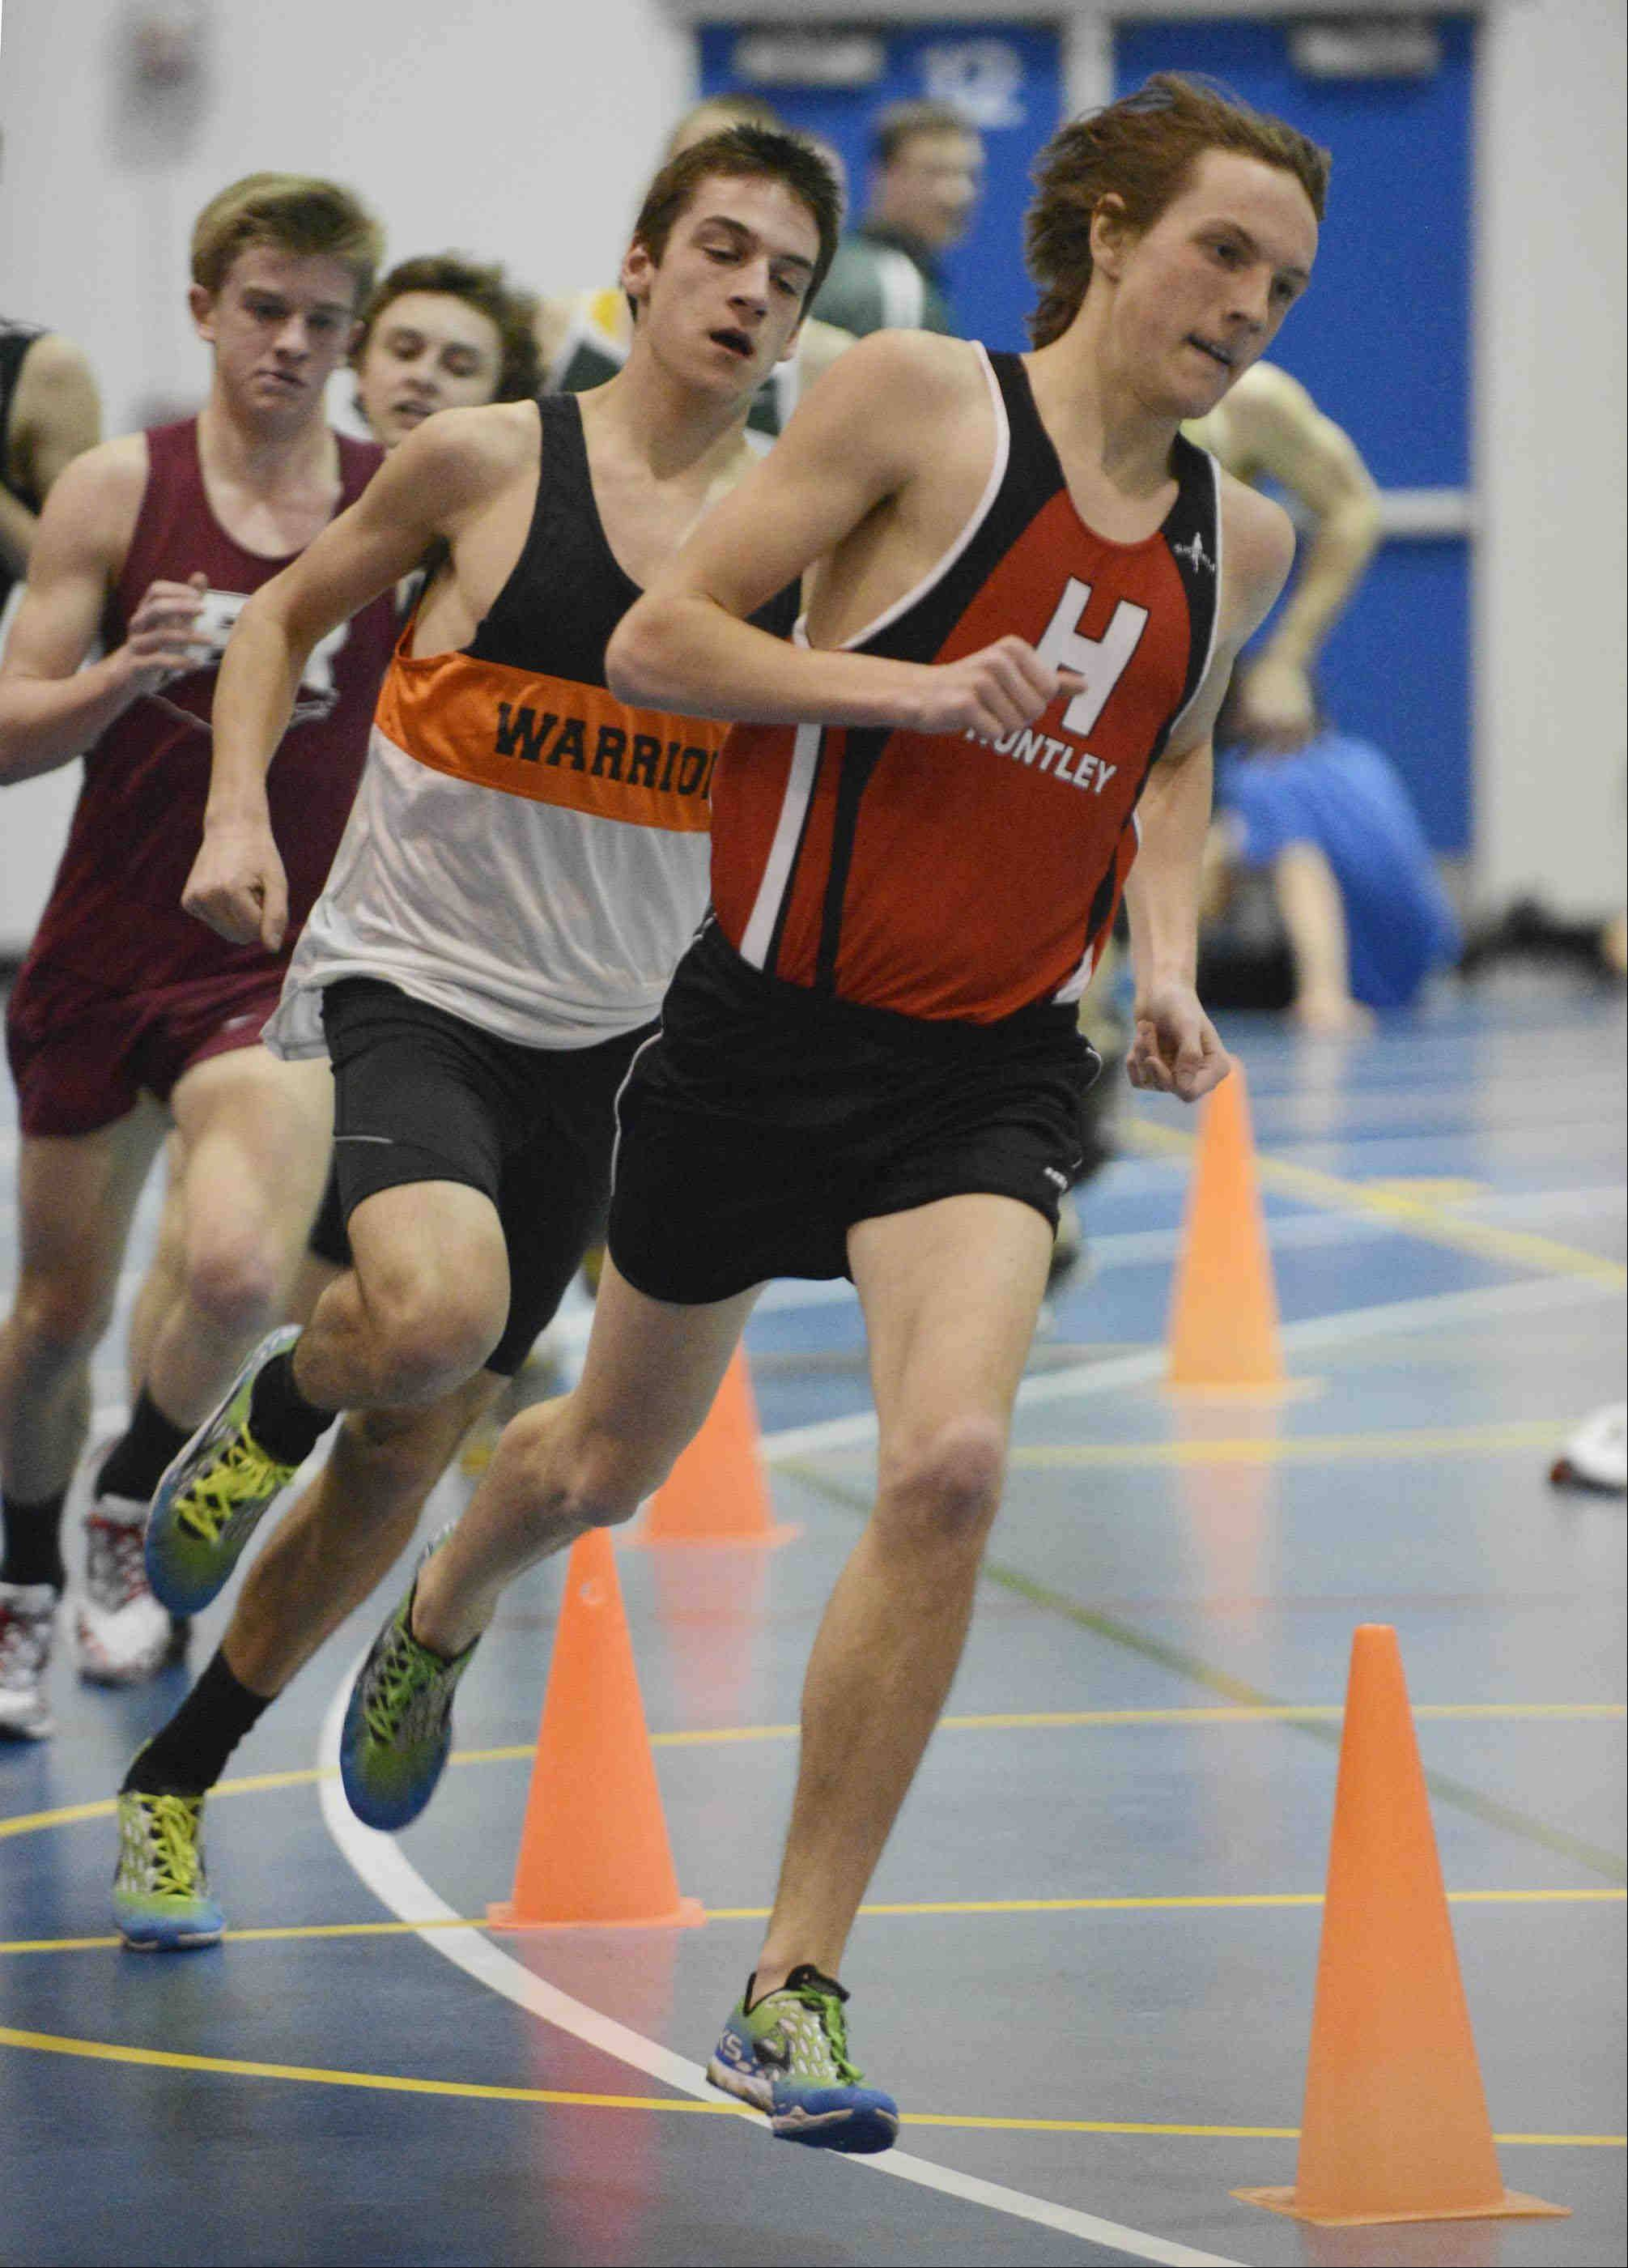 Huntley's Mark Marcuccelli leads his heat of the 1,600-meter run Wednesday at the Fox Valley Conference indoor meet at Dundee-Crown.